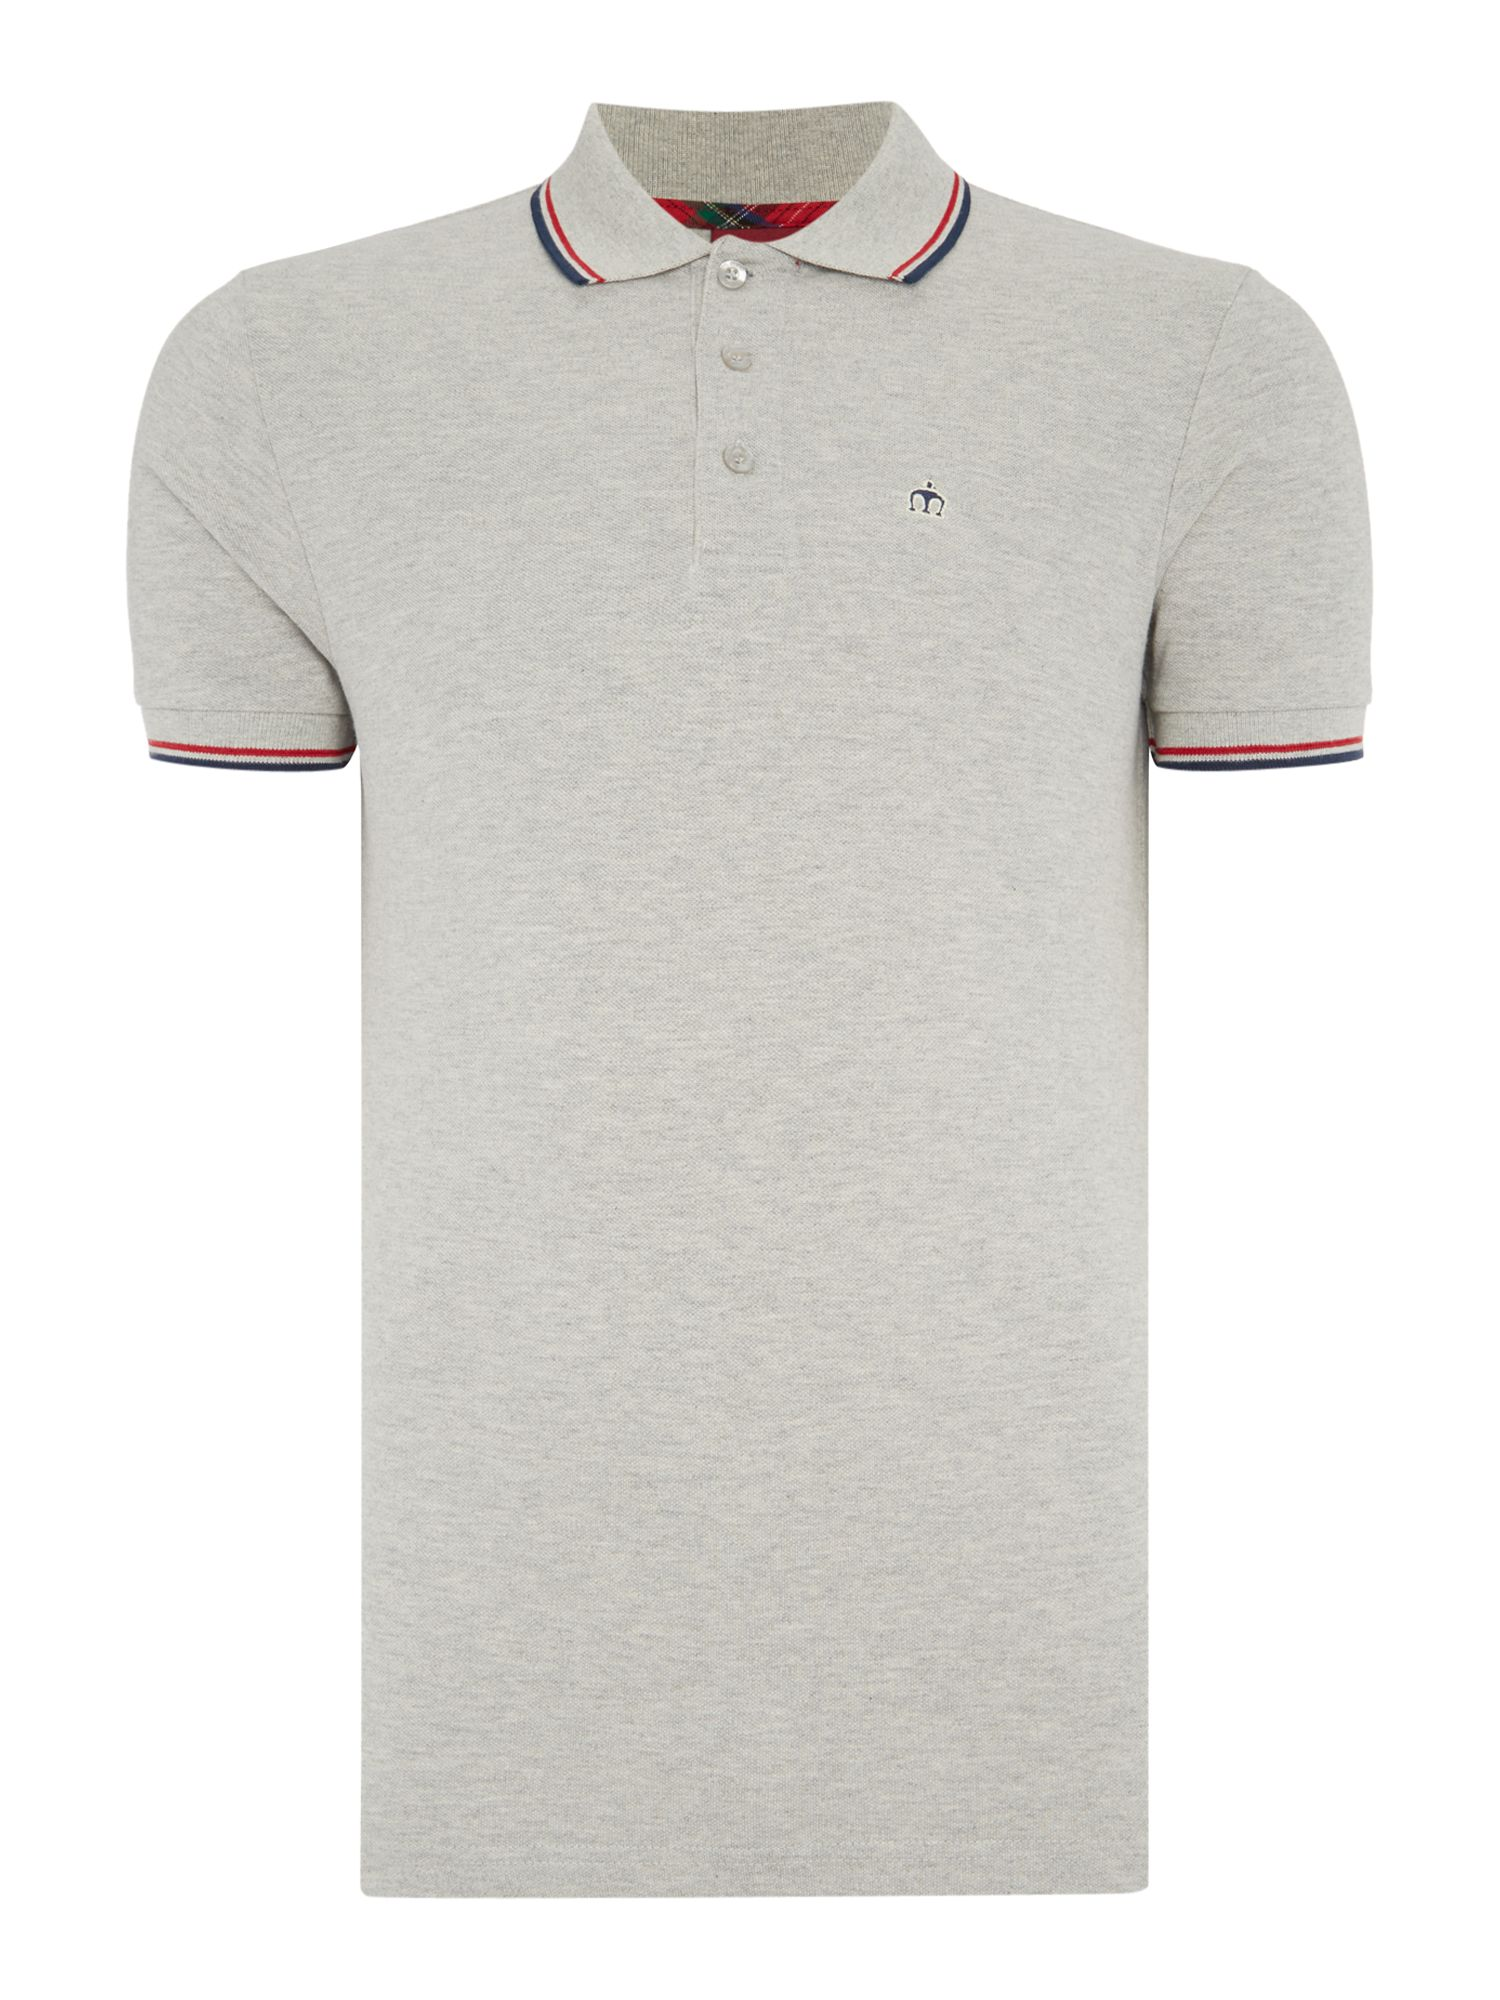 Men's Merc Card Classic Twin Tipped Polo Shirt, Grey